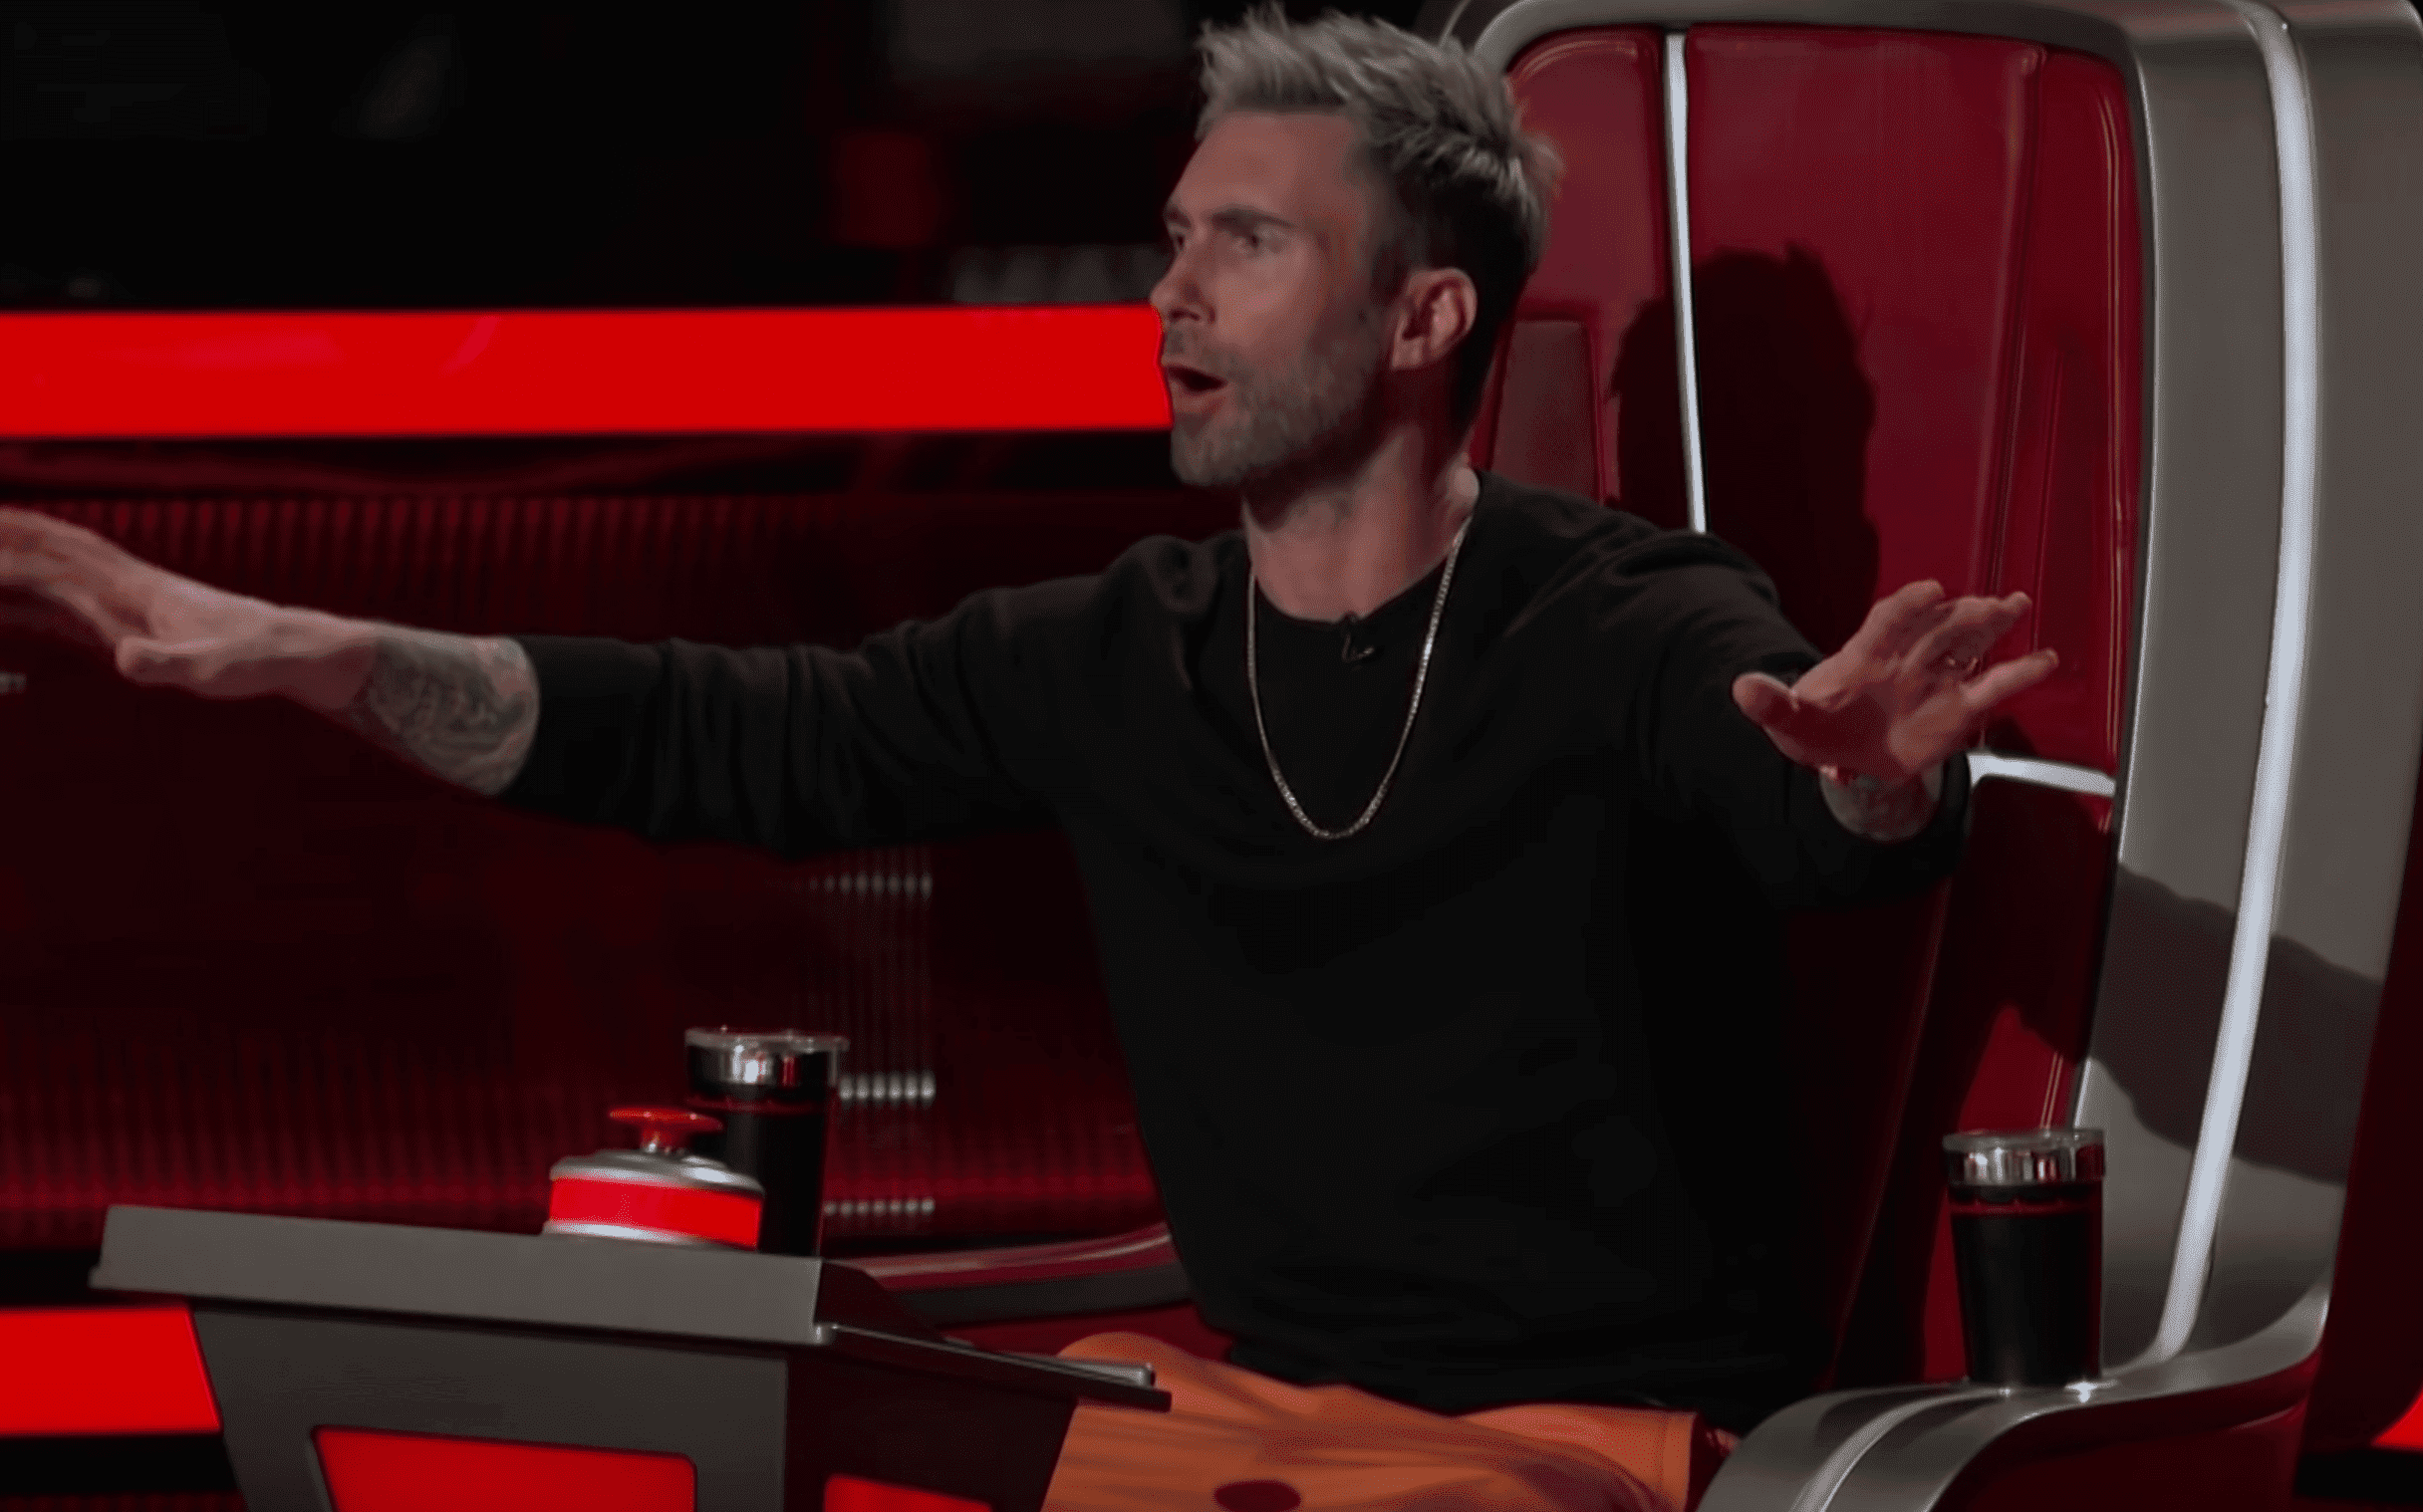 Adam Levine in the set of 'The Voice'. | Source: YouTube/TheVoice